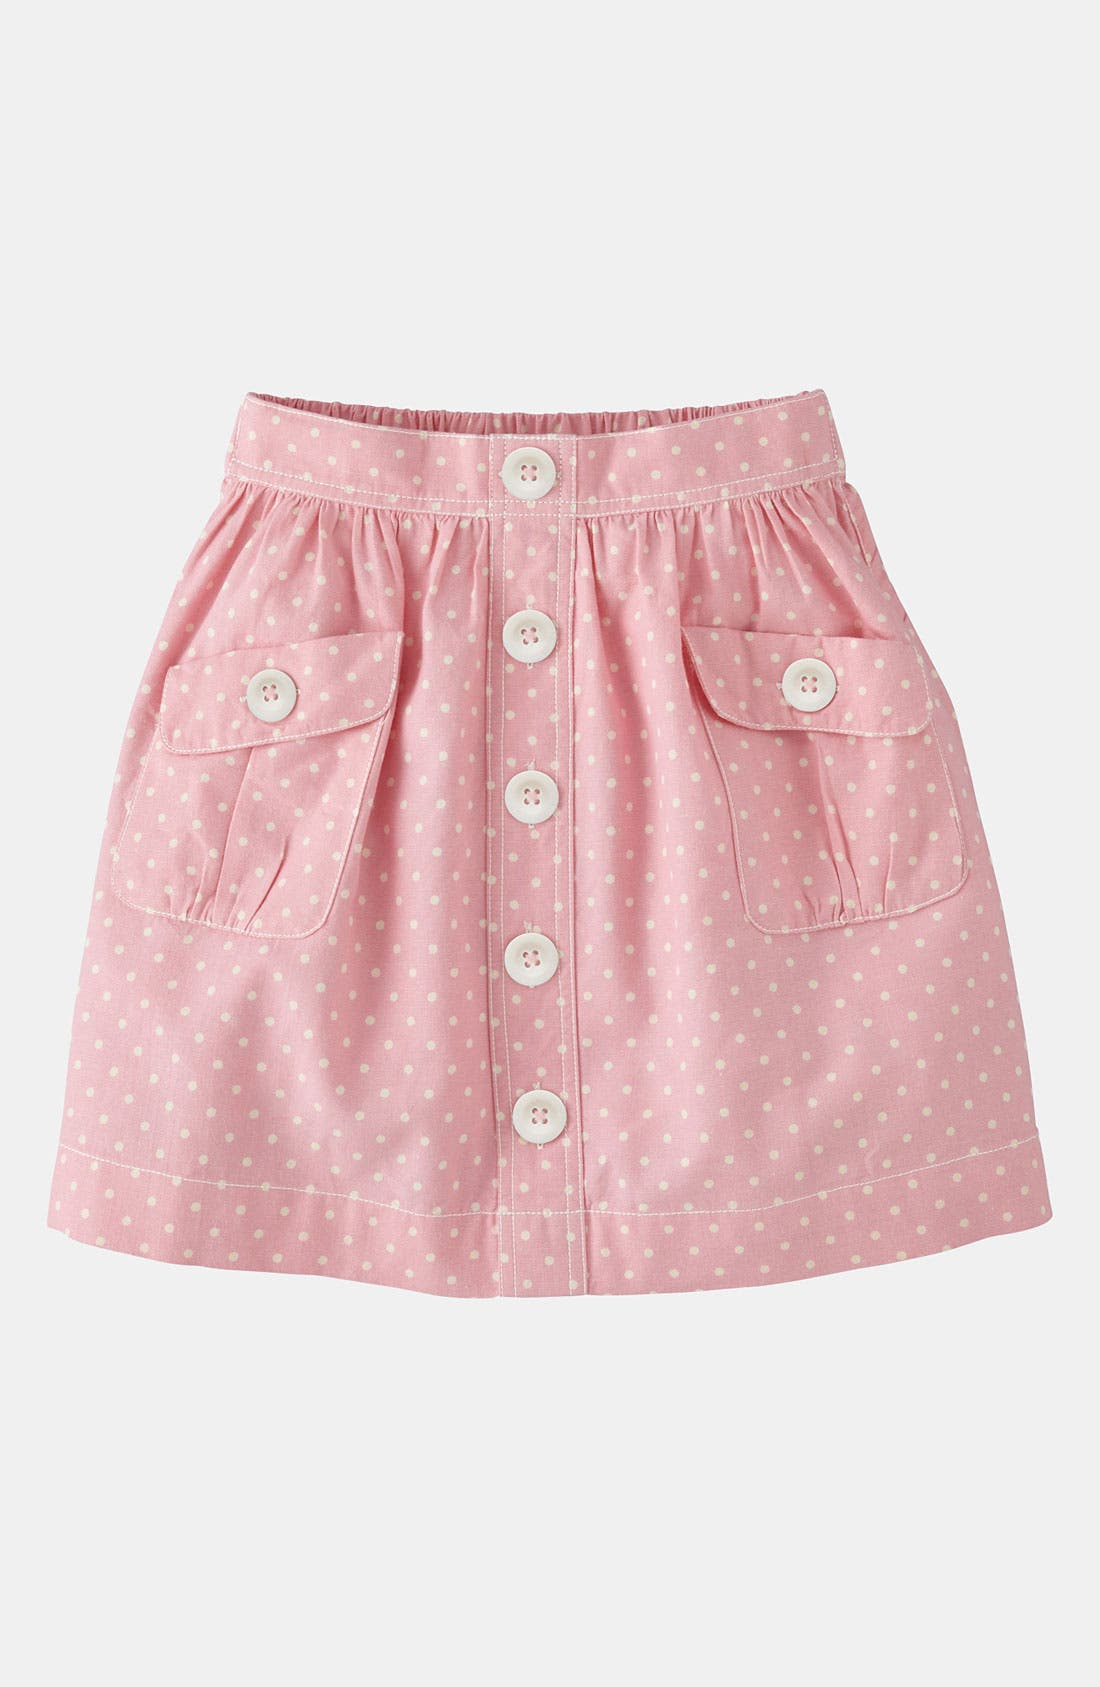 Alternate Image 1 Selected - Mini Boden 'Spotty' Chambray Skirt (Little Girls & Big Girls)